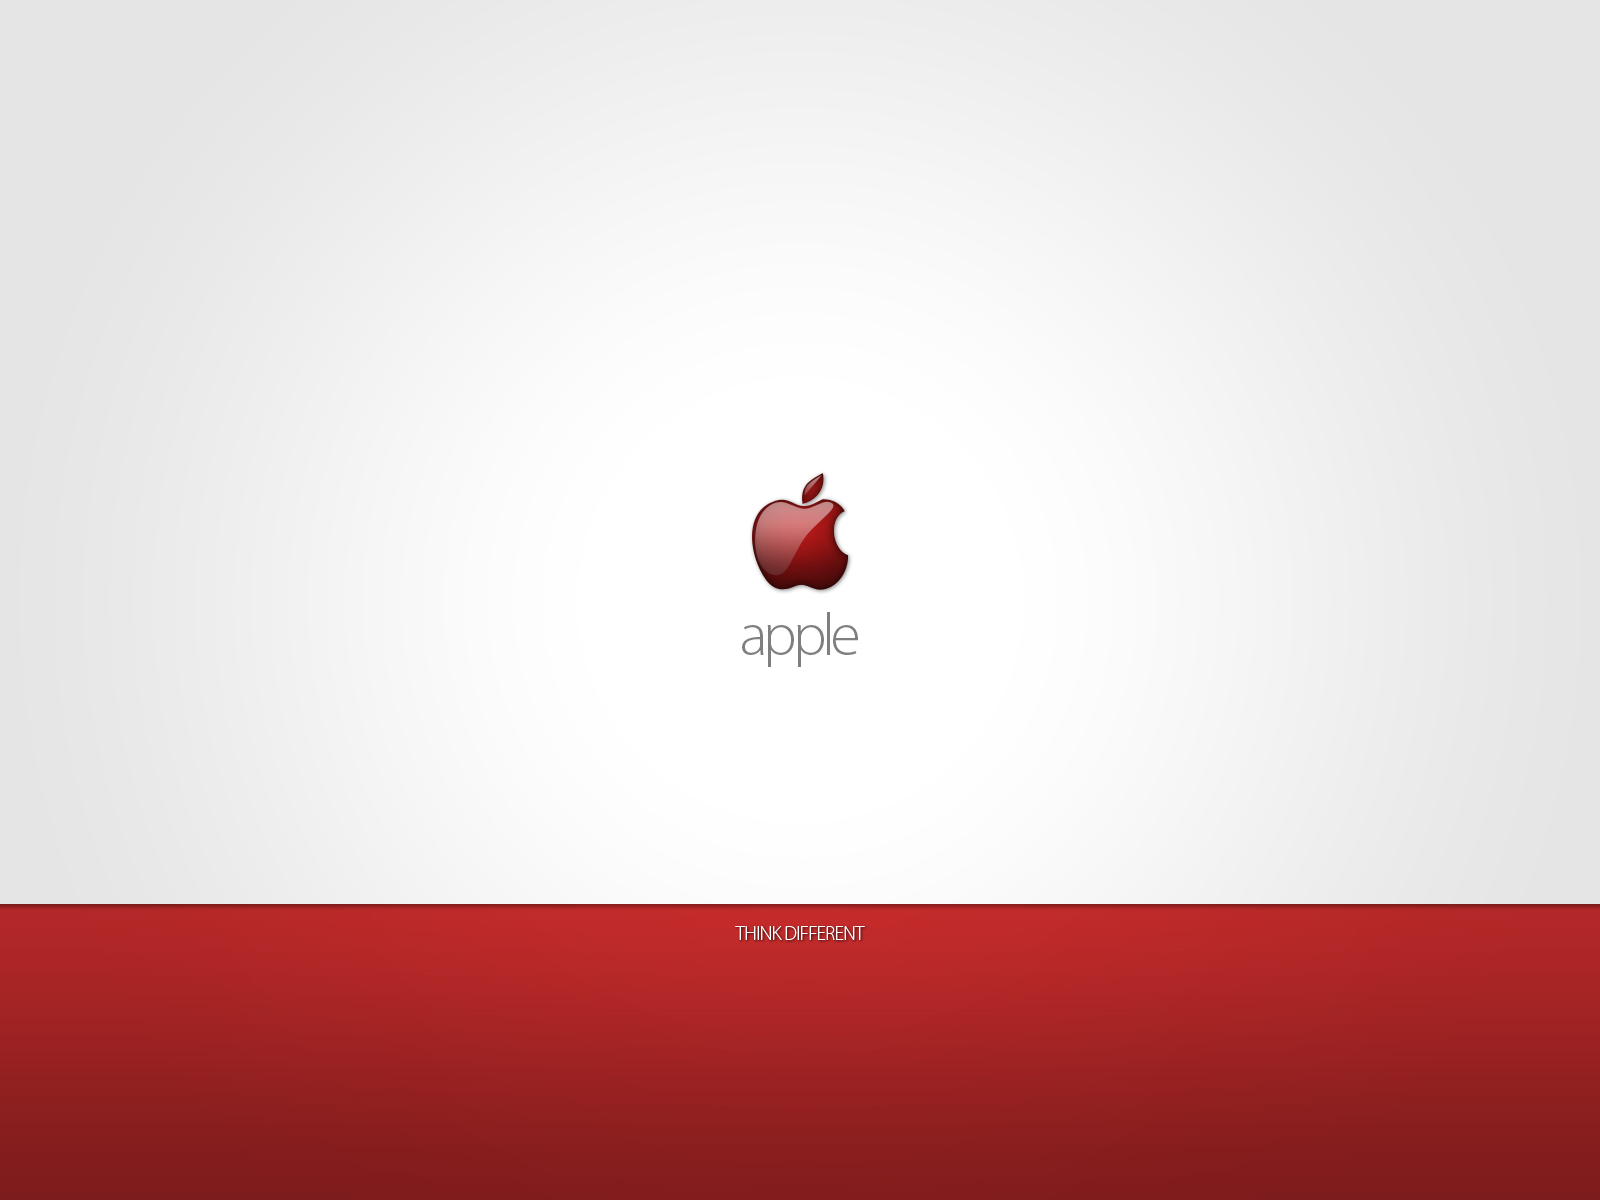 Red apple think different wallpapers red apple think - Red apple wallpaper ...